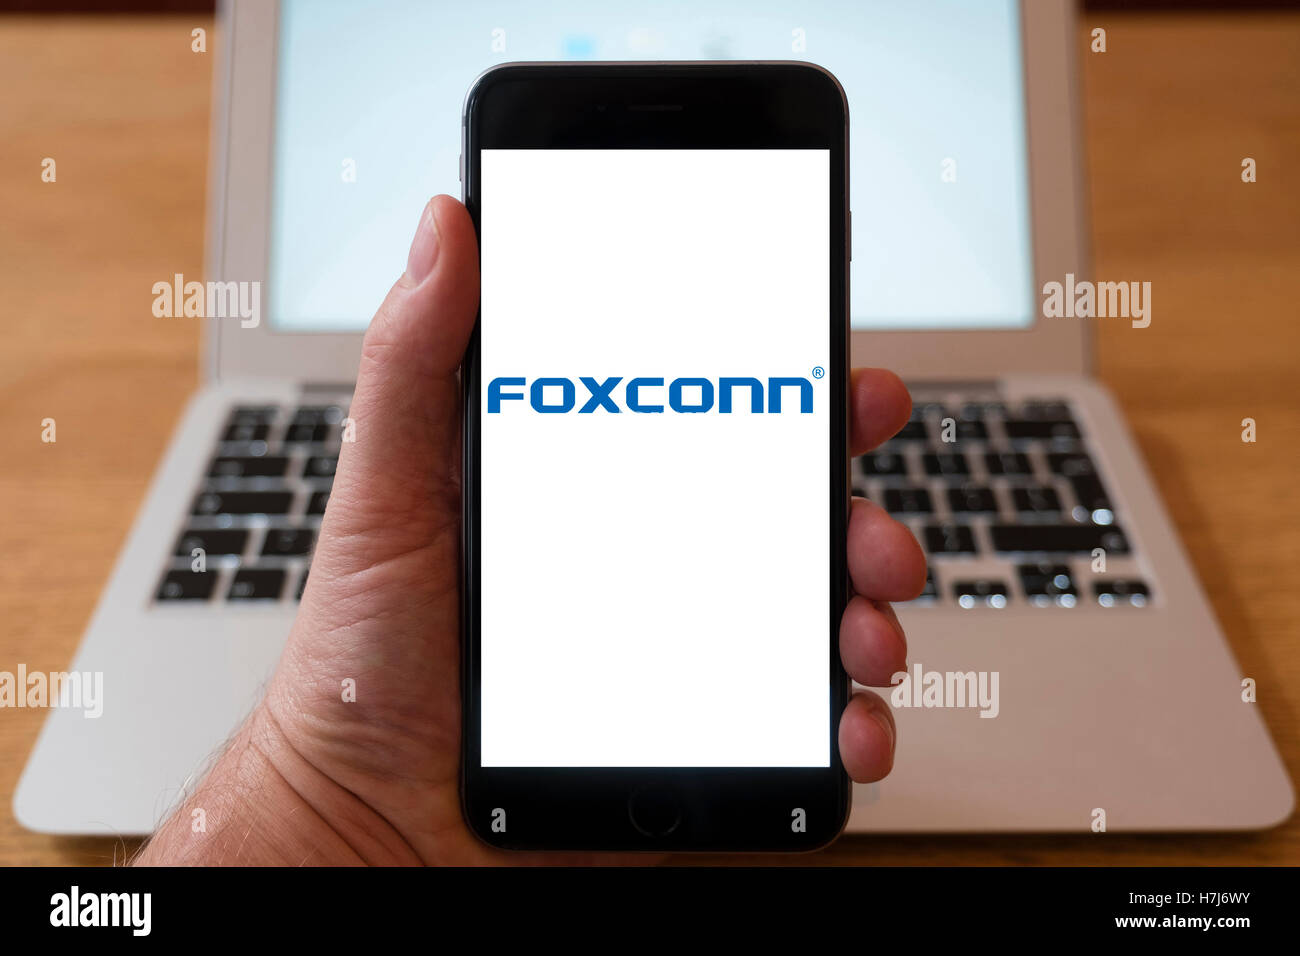 Using iPhone smartphone to display logo of Foxconn (Technology), Taiwanese multinational electronics contract manufacturing - Stock Image